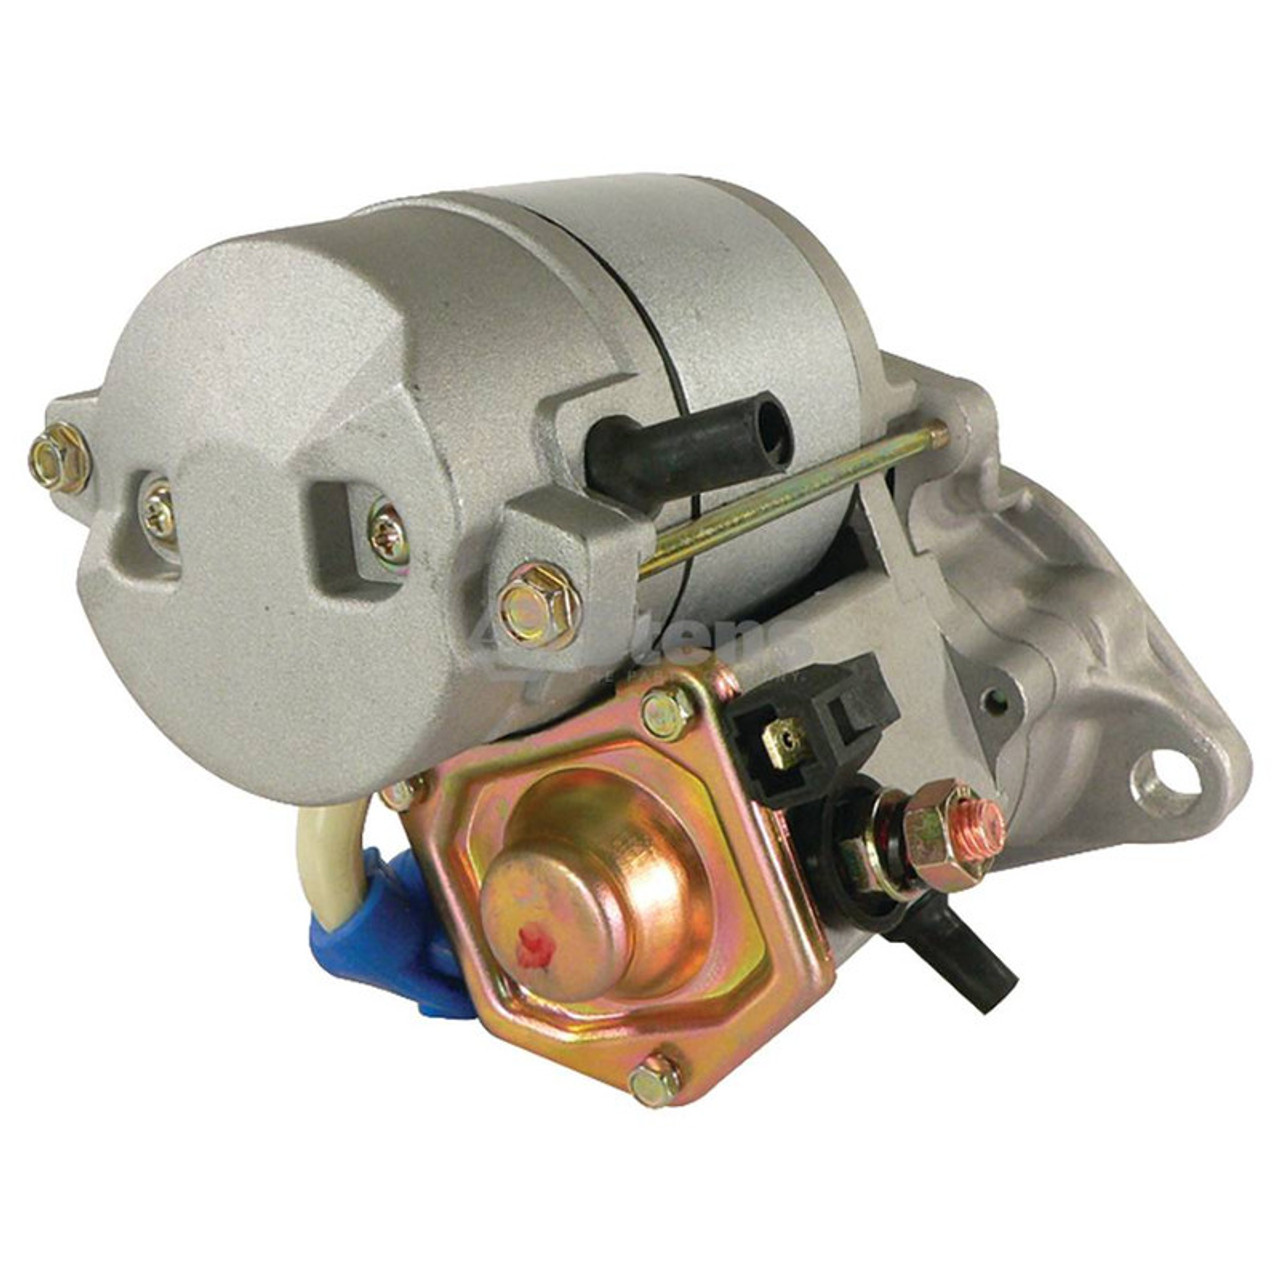 Electric Starter for Denso 0280004730, 1280001160, 1280001161, 2280001040, 2280001041, 9722809104, 028000-4730, 128000-1160, 128000-1161, 228000-1040, 228000-1041, 9722809-104